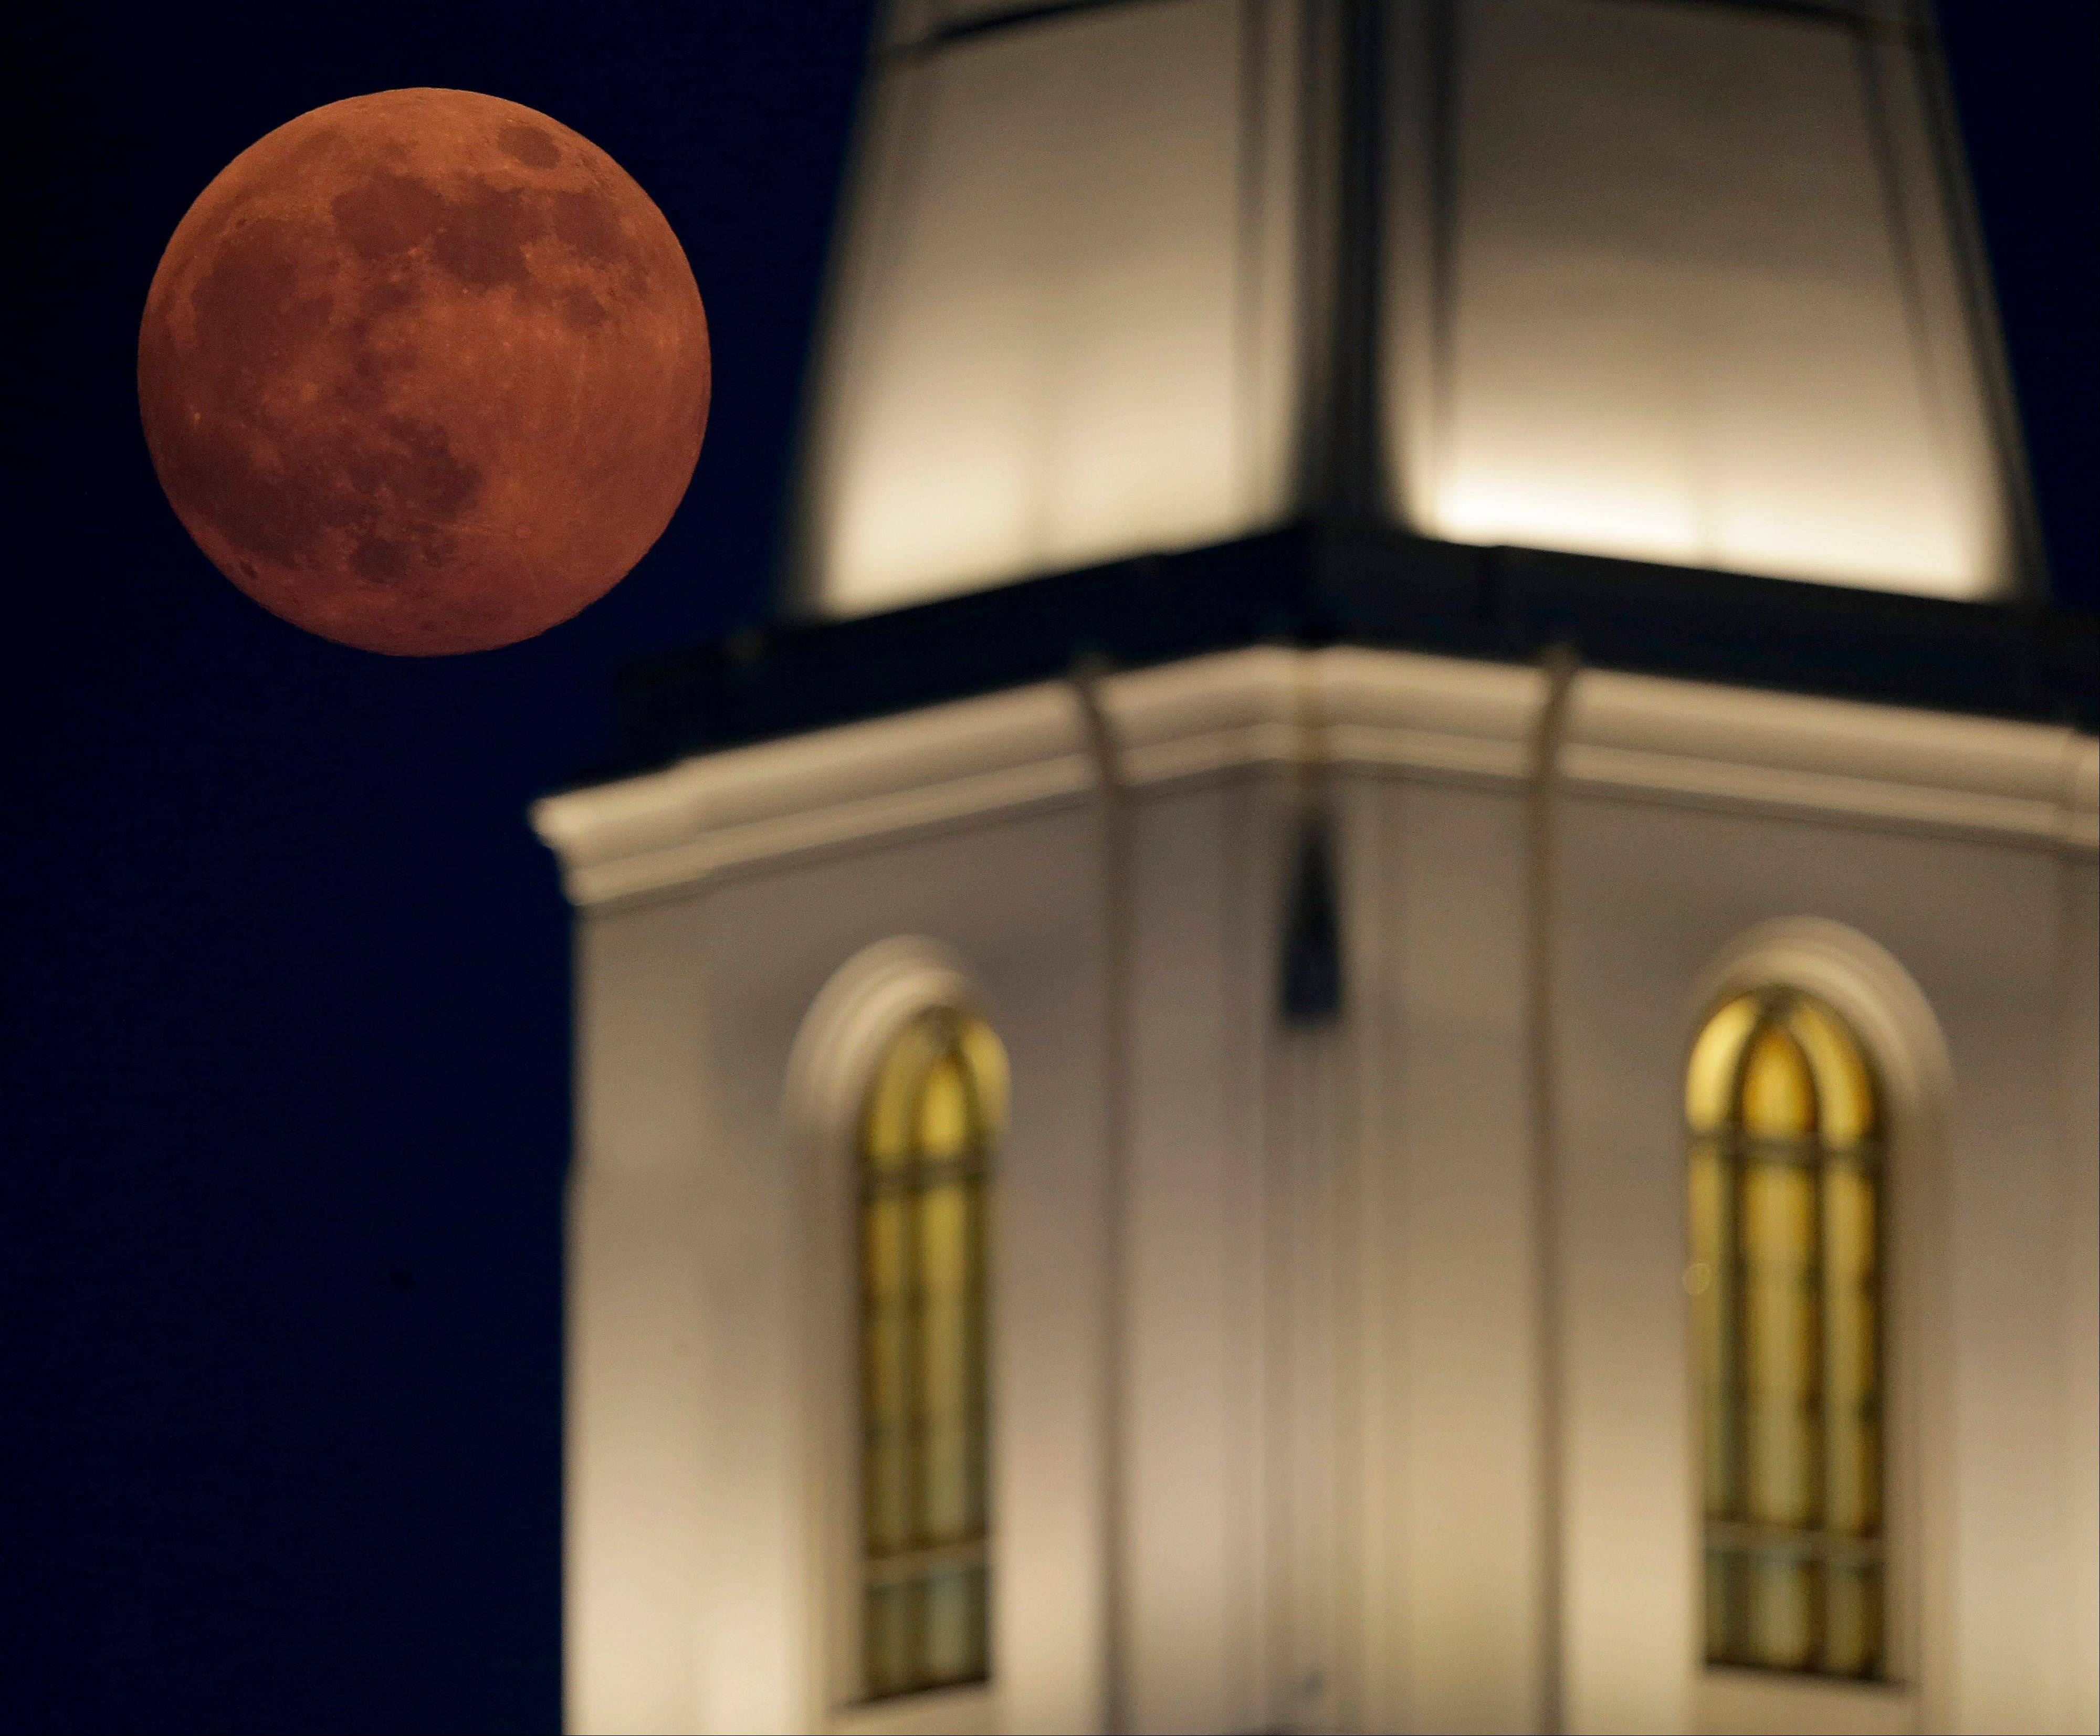 A full moon rises beyond a Latter-day Saints temple Saturday, June 22, 2013, in Kansas City, Mo. The moon, which will reach its full stage on Sunday, is expected to be 13.5 percent closer to earth during a phenomenon known as supermoon.